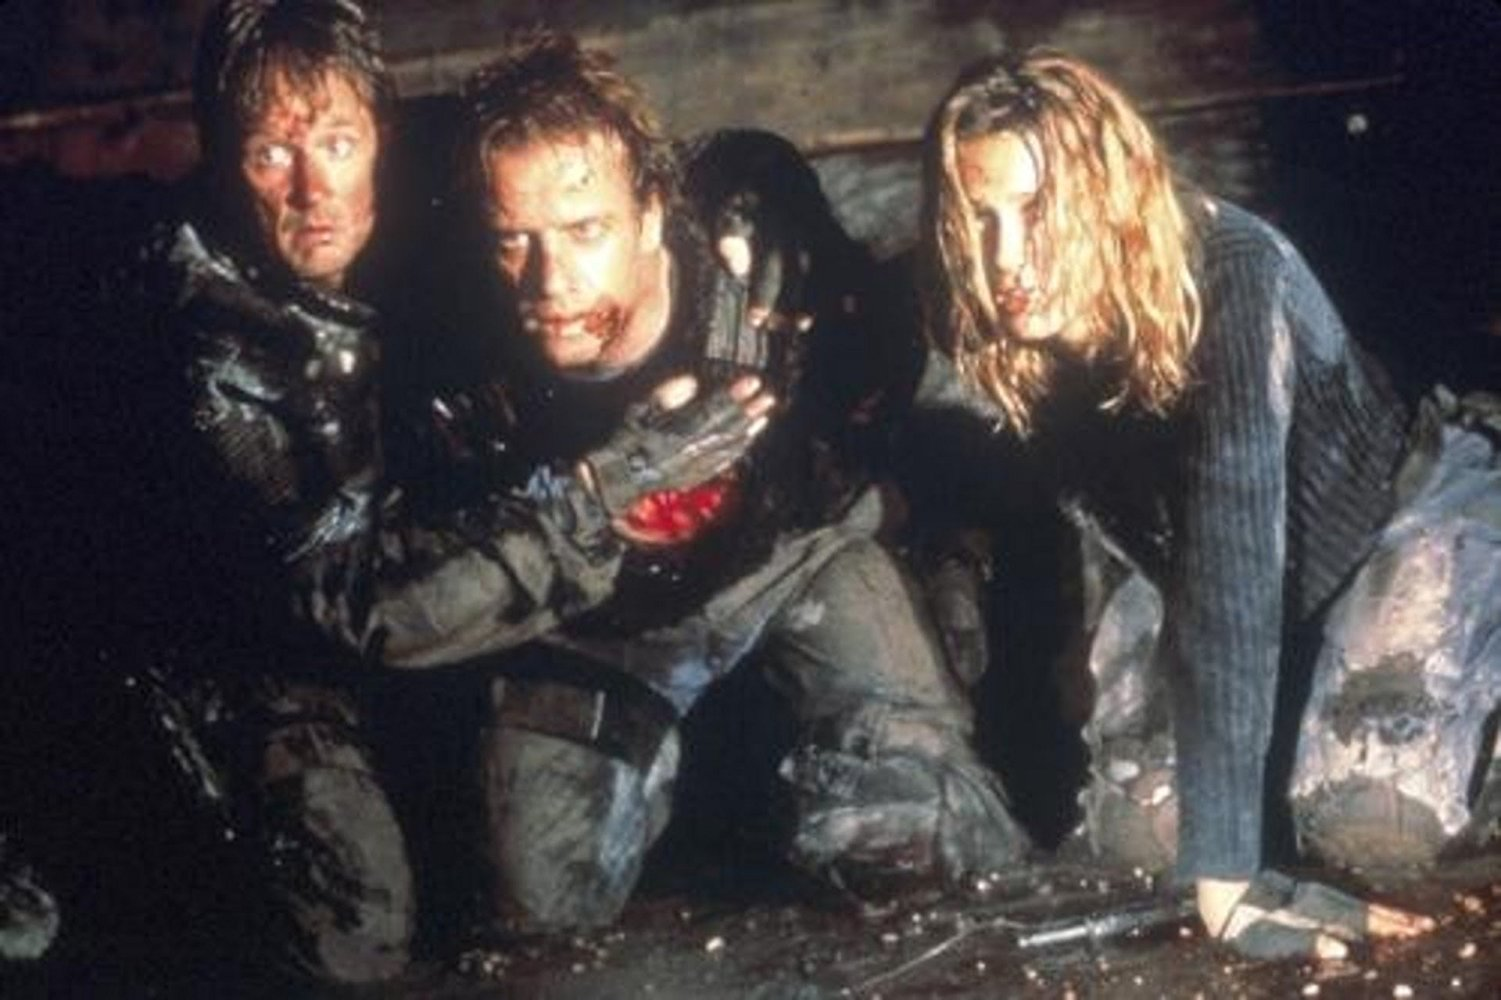 ( to r) Norbert weisser, Christopher Lambert and Natasha Henstridge in the sewers in Adrenalin: Fear the Rush (1996)